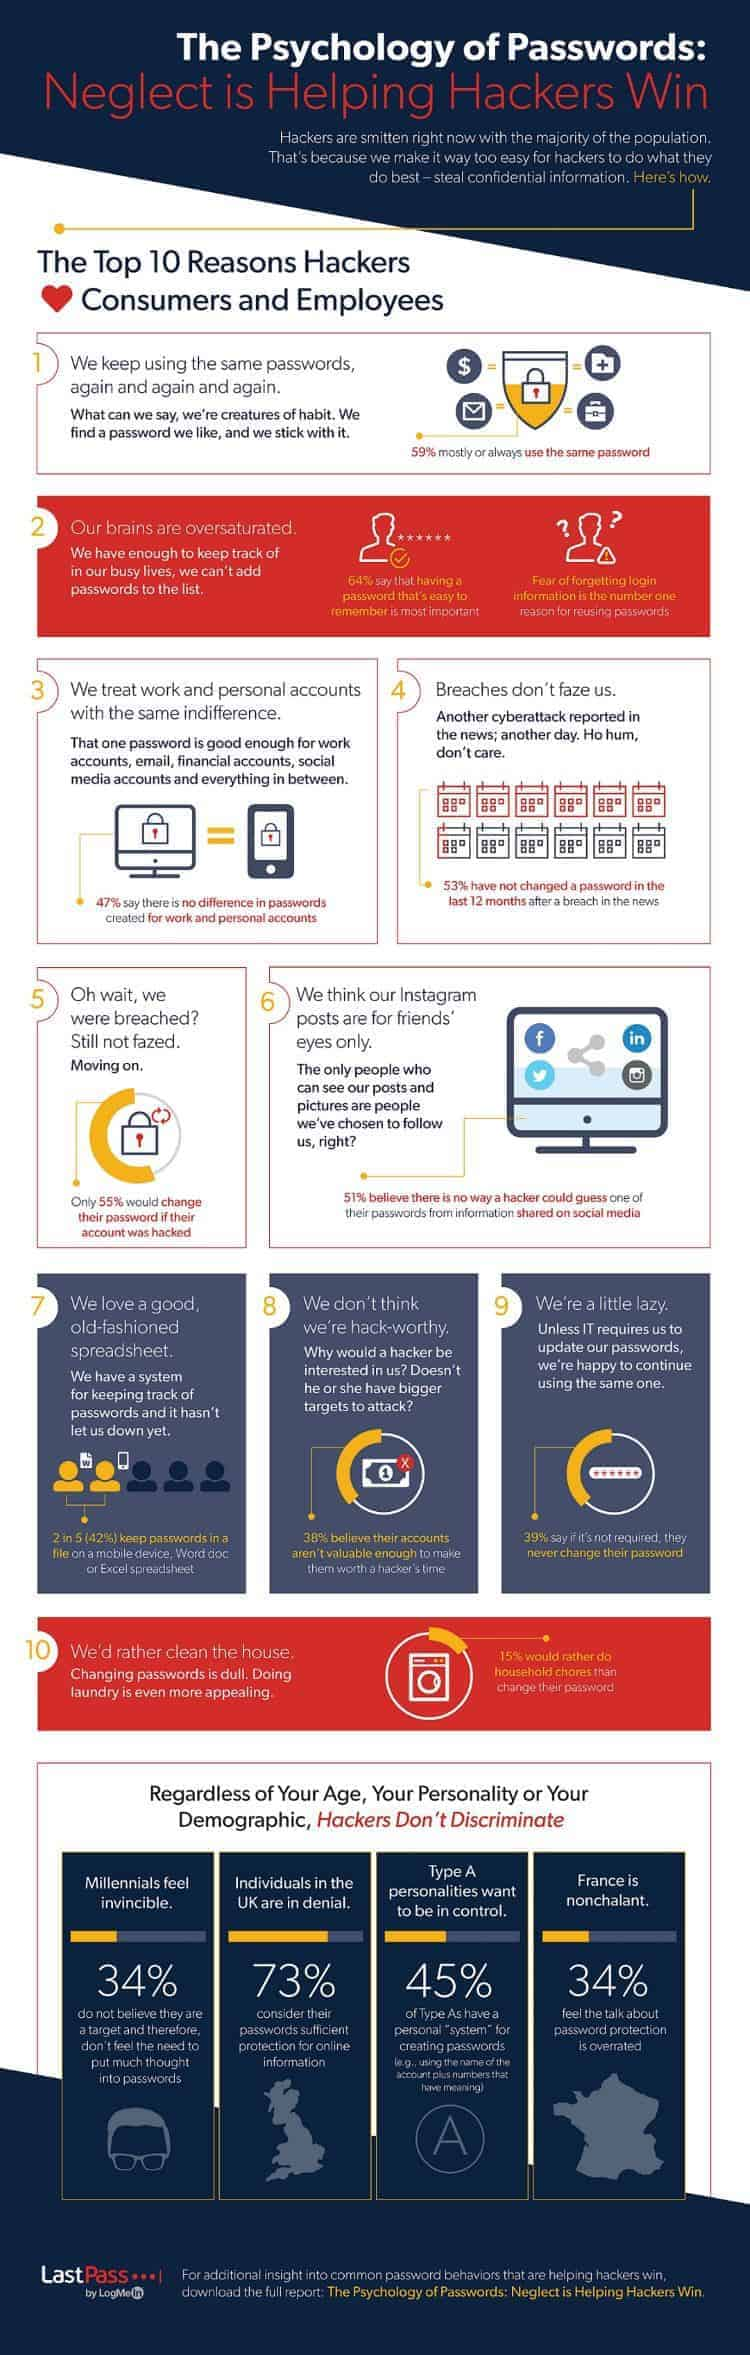 The psychology of passwords infographic